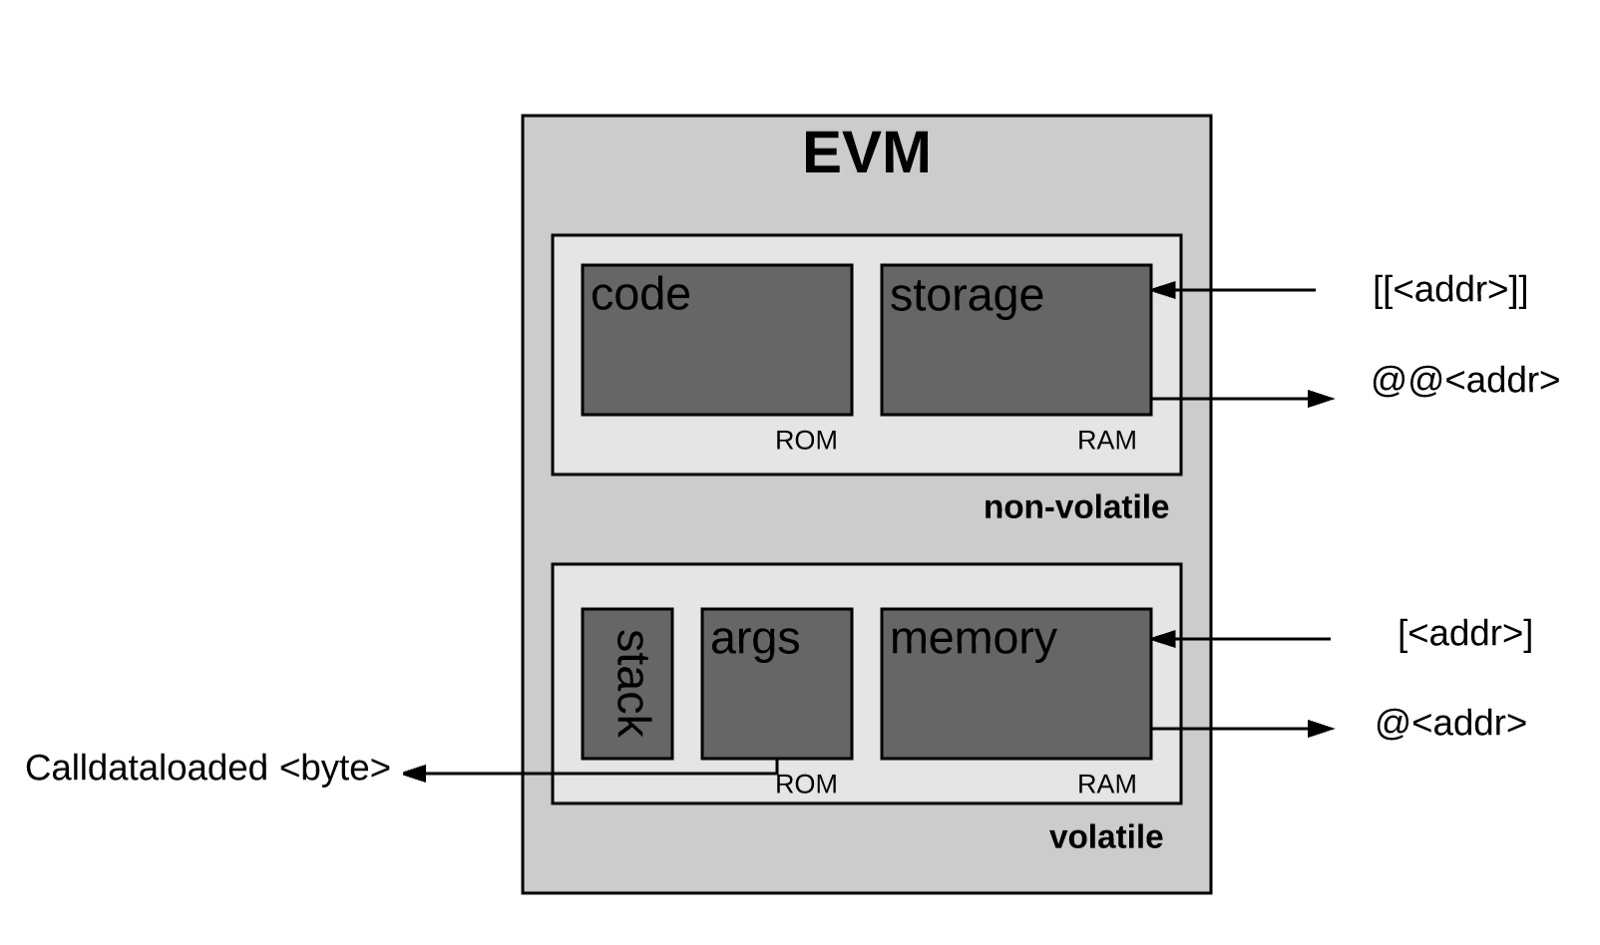 stack diagram virtual environment 2003 dodge neon stereo wiring how does ethereum work anyway preethi kasireddy medium the evm also has its own language bytecode when a programmer like you or me writes smart contracts that operate on we typically write code